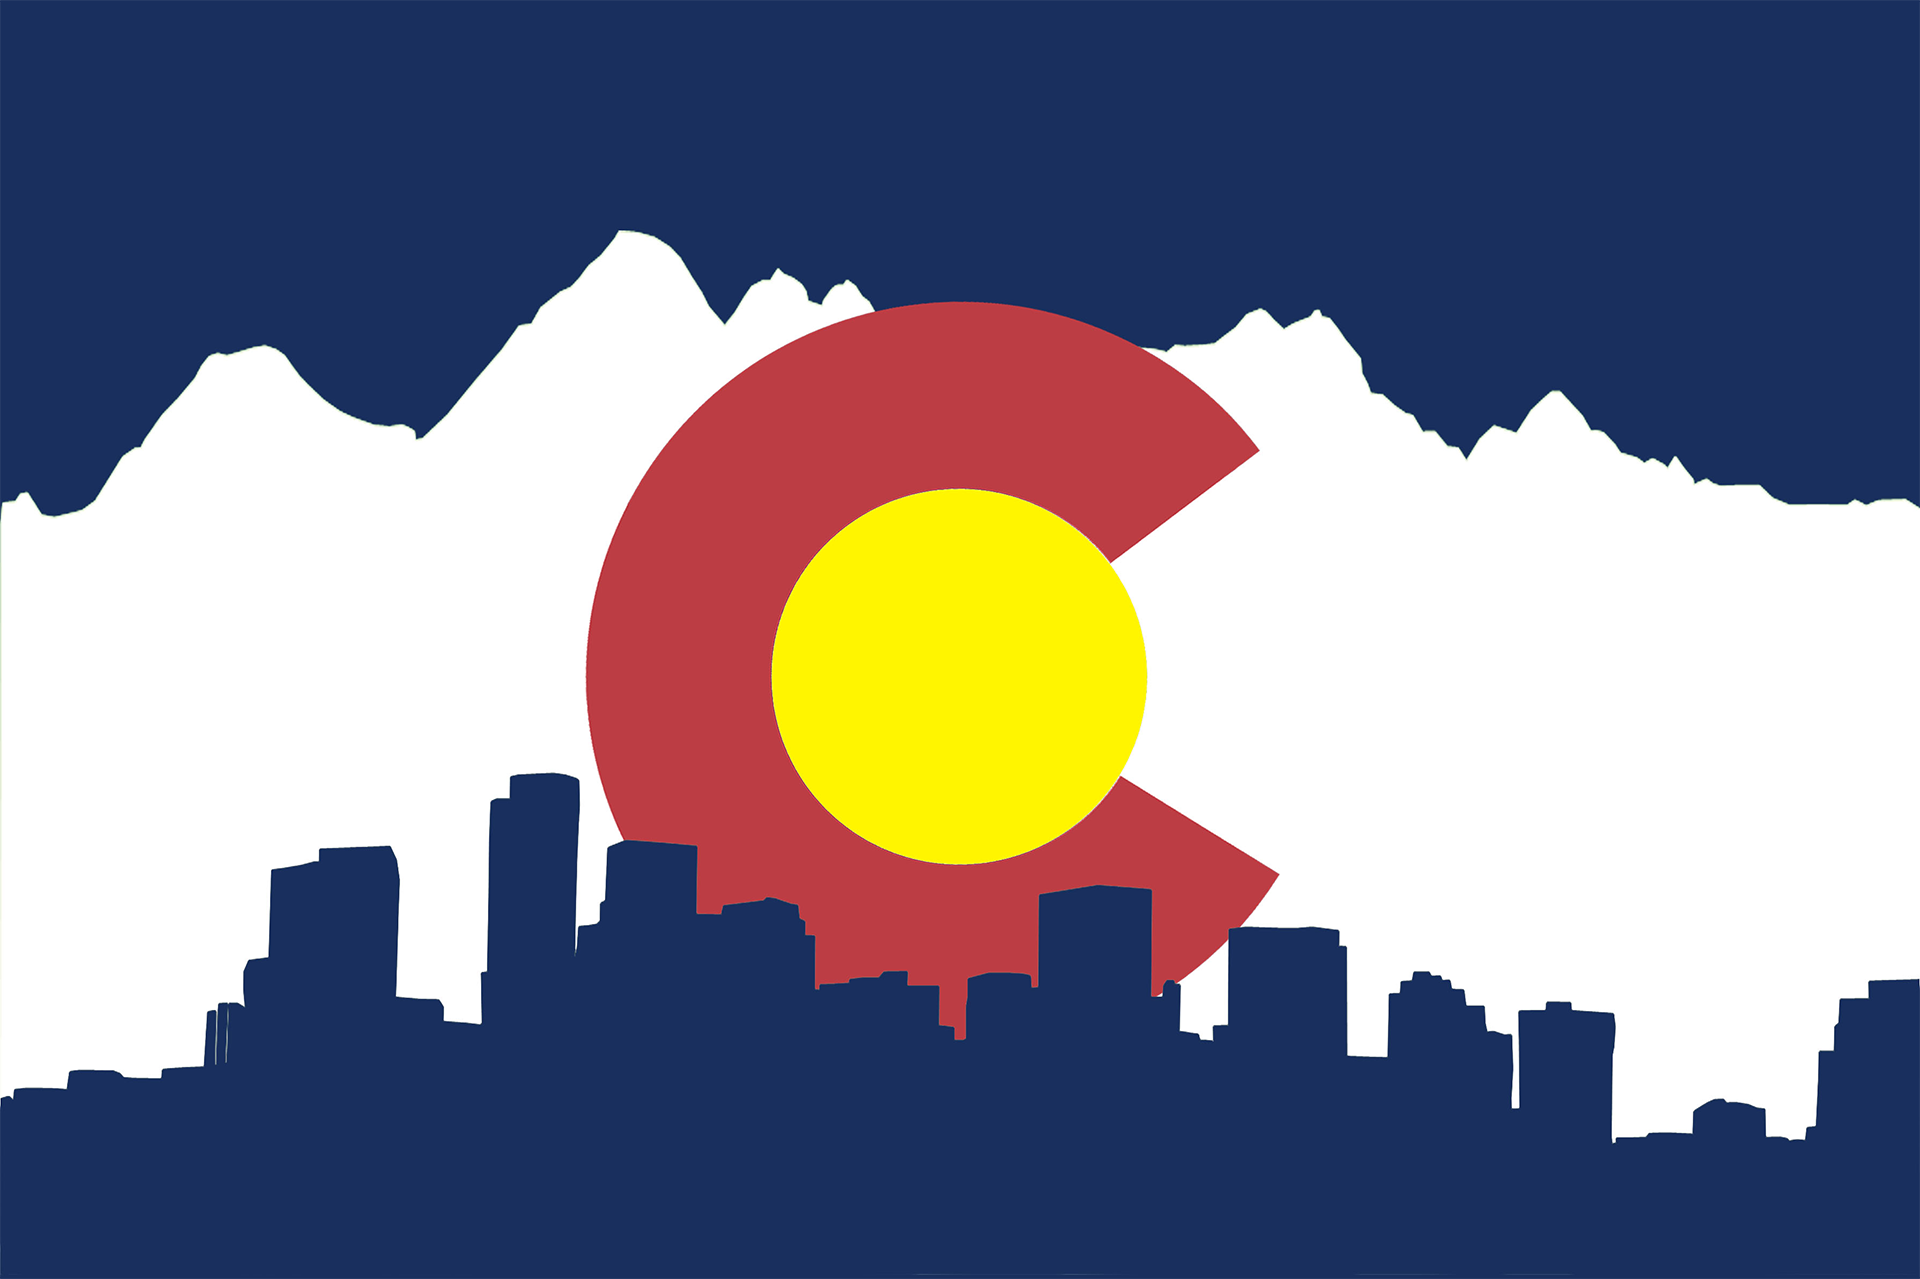 Colorado Flag Computer Wallpapers Desktop Backgrounds 1920x1279 1920x1279